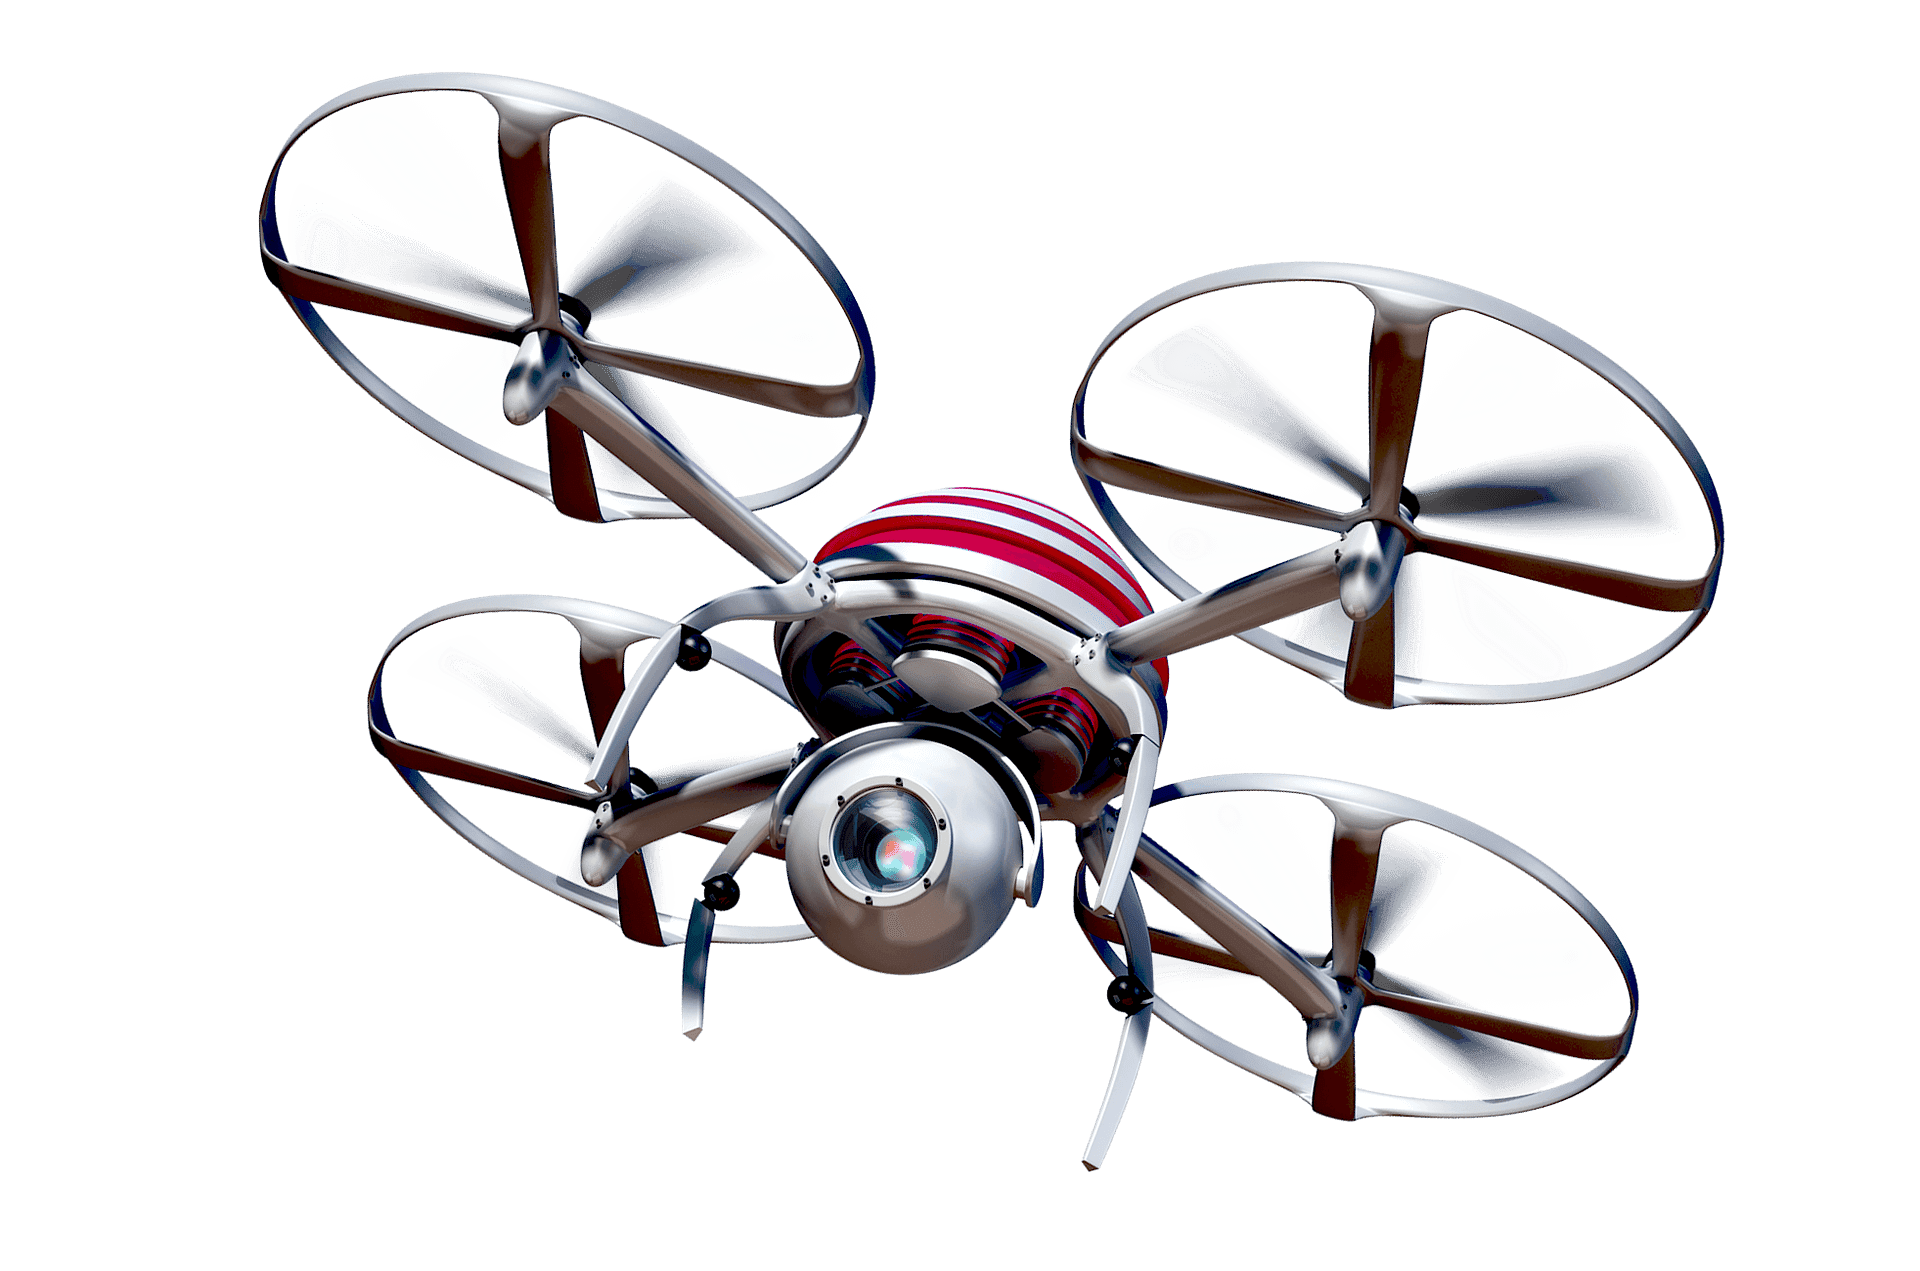 content/de-de/images/repository/isc/2020/a-spy-drone-with-large-camera-lens.png